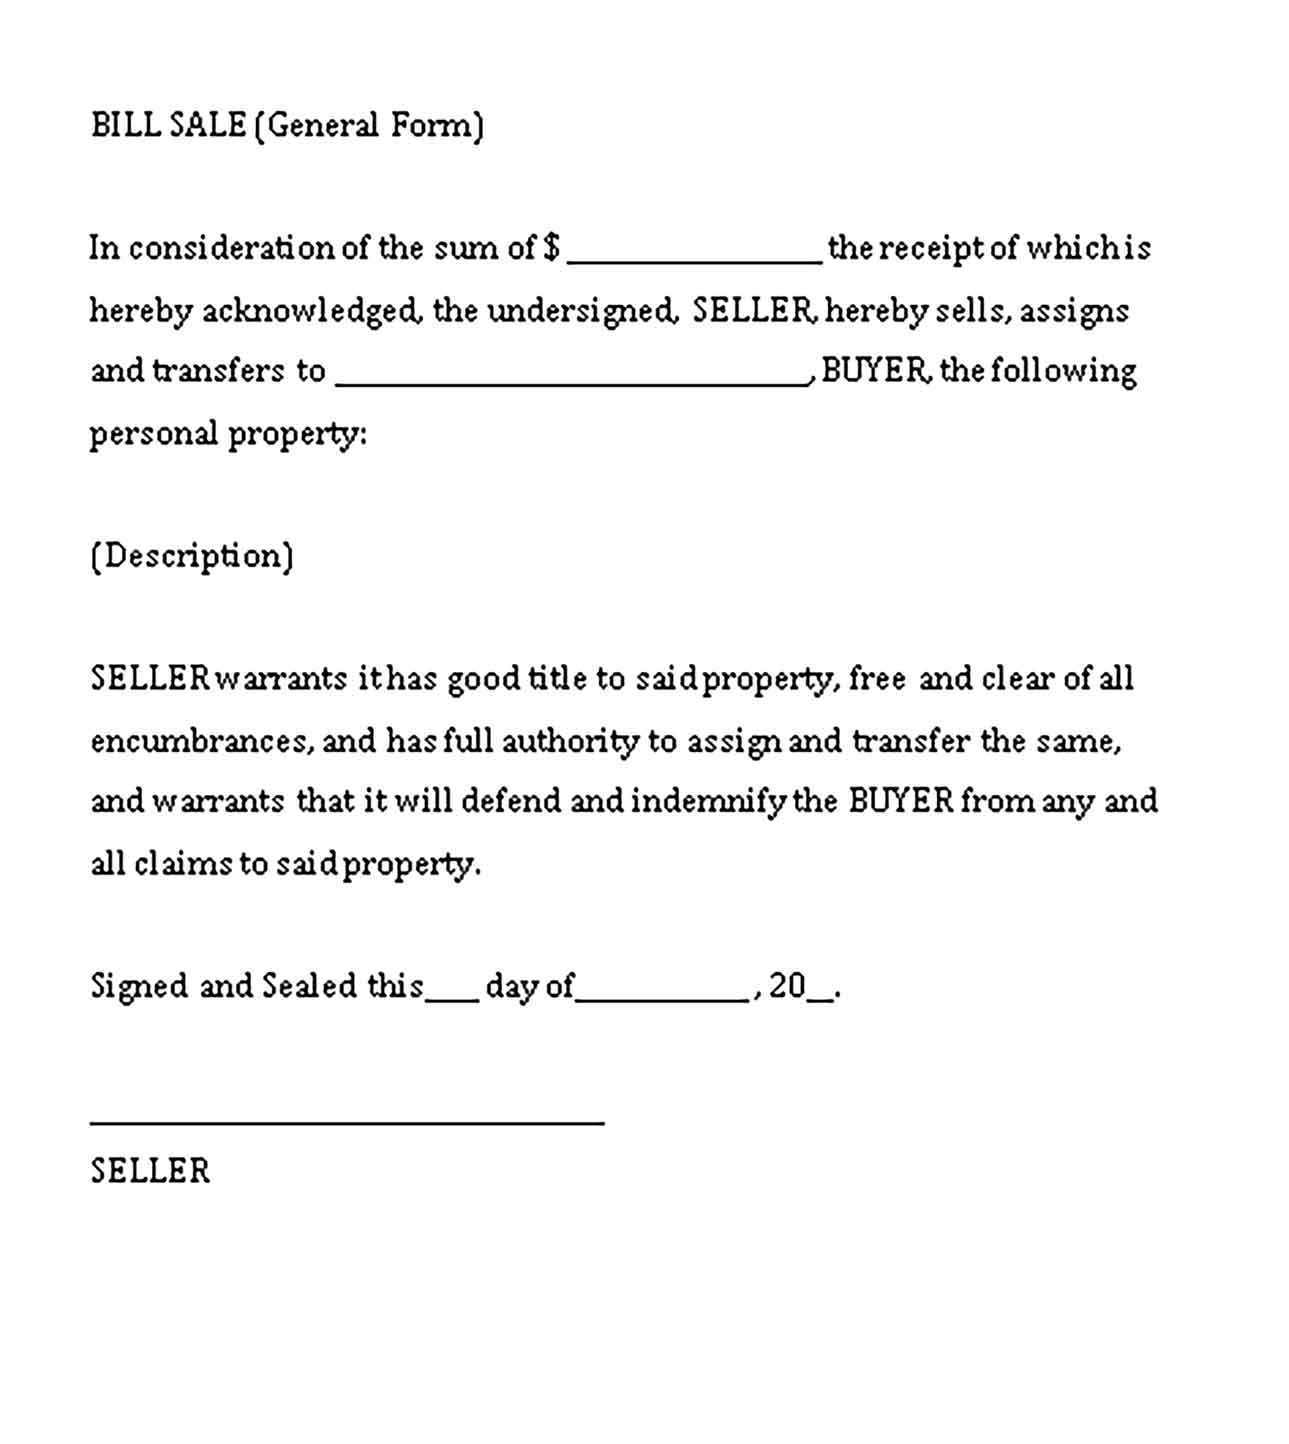 Sample general bill of sale word Templates